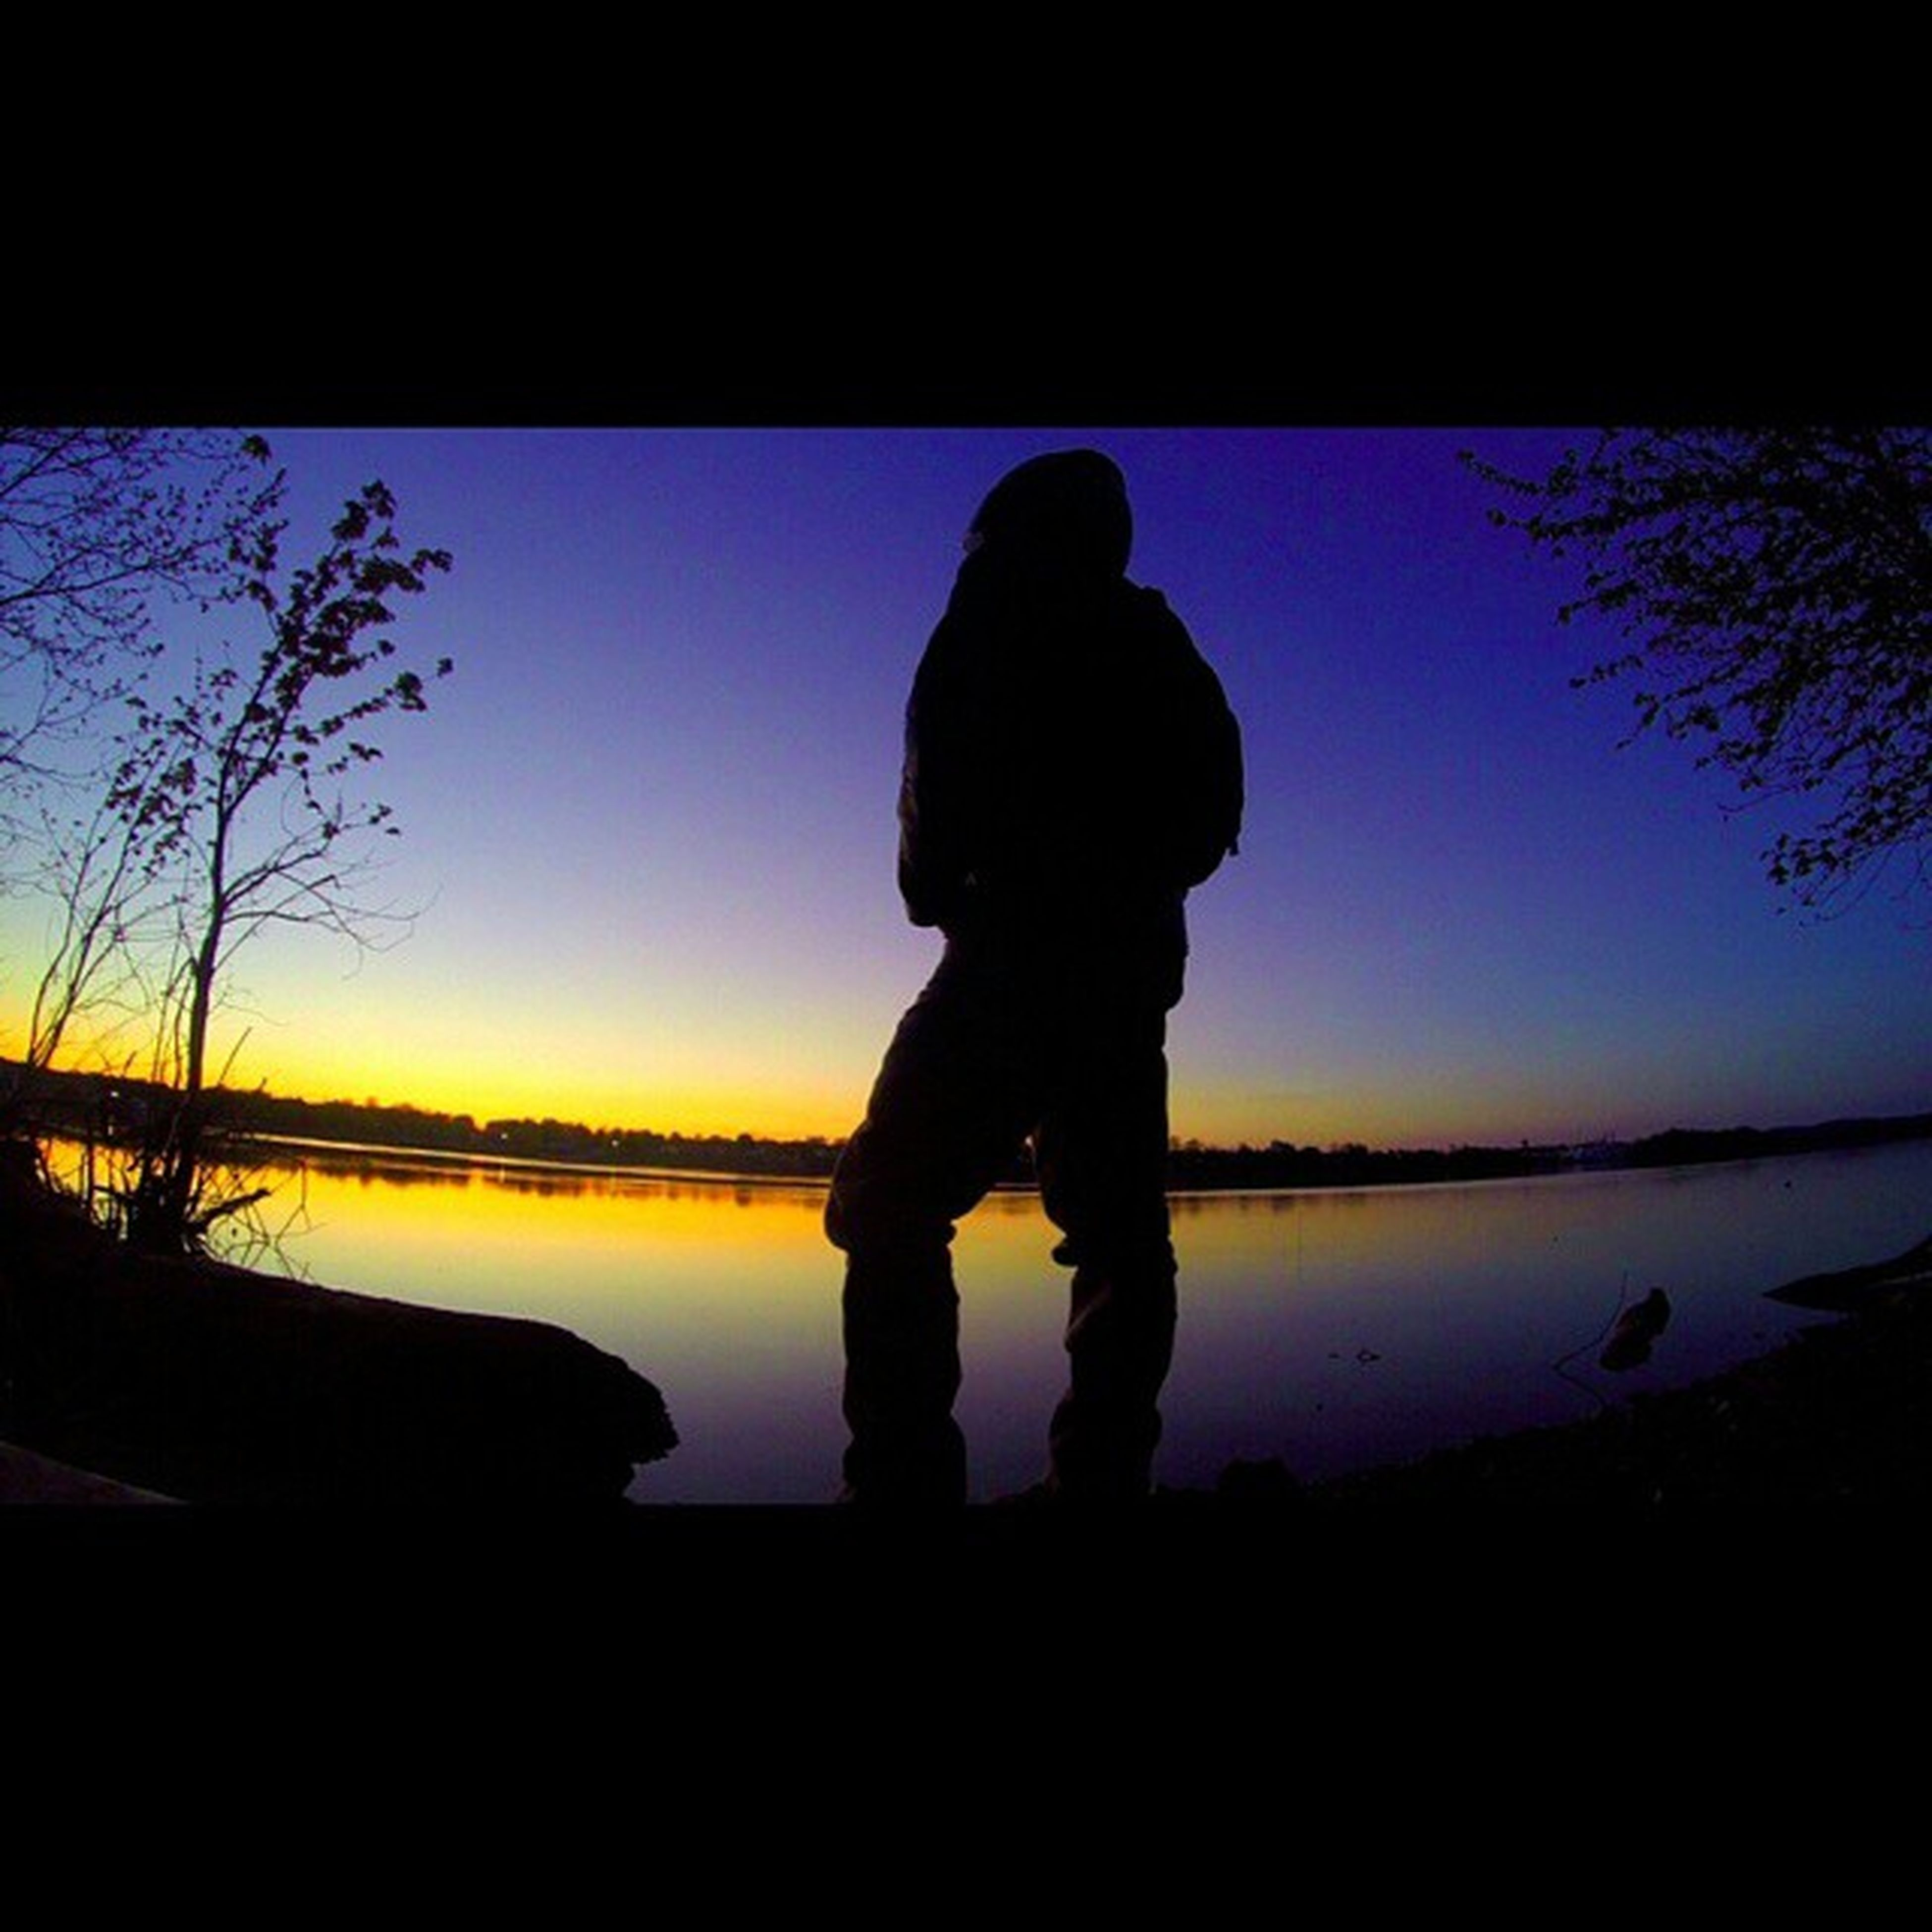 silhouette, water, lifestyles, leisure activity, rear view, full length, standing, sunset, sky, childhood, men, clear sky, sea, tranquility, lake, nature, person, tree